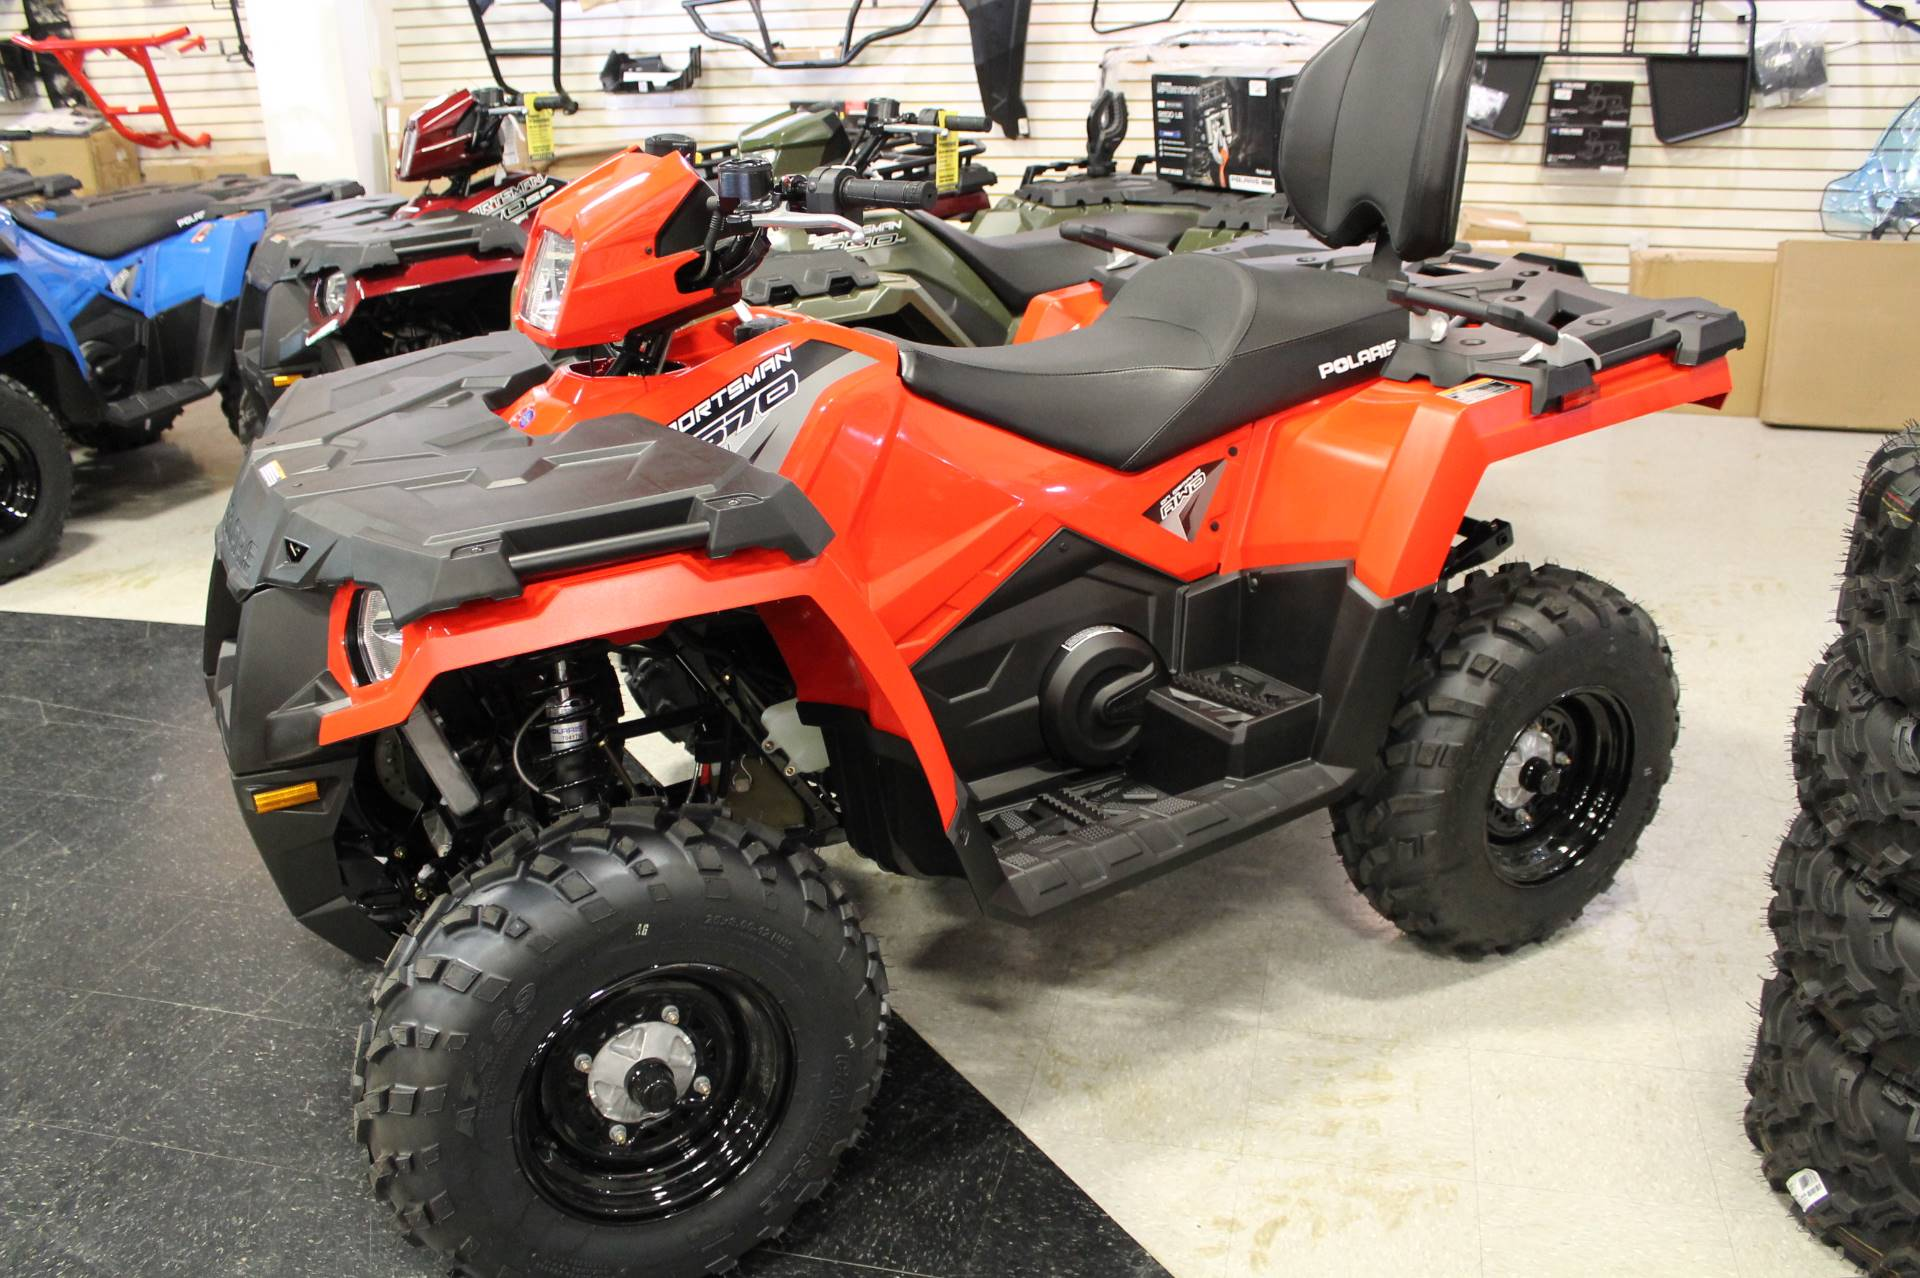 2019 Polaris Sportsman Touring 570 in Adams, Massachusetts - Photo 1